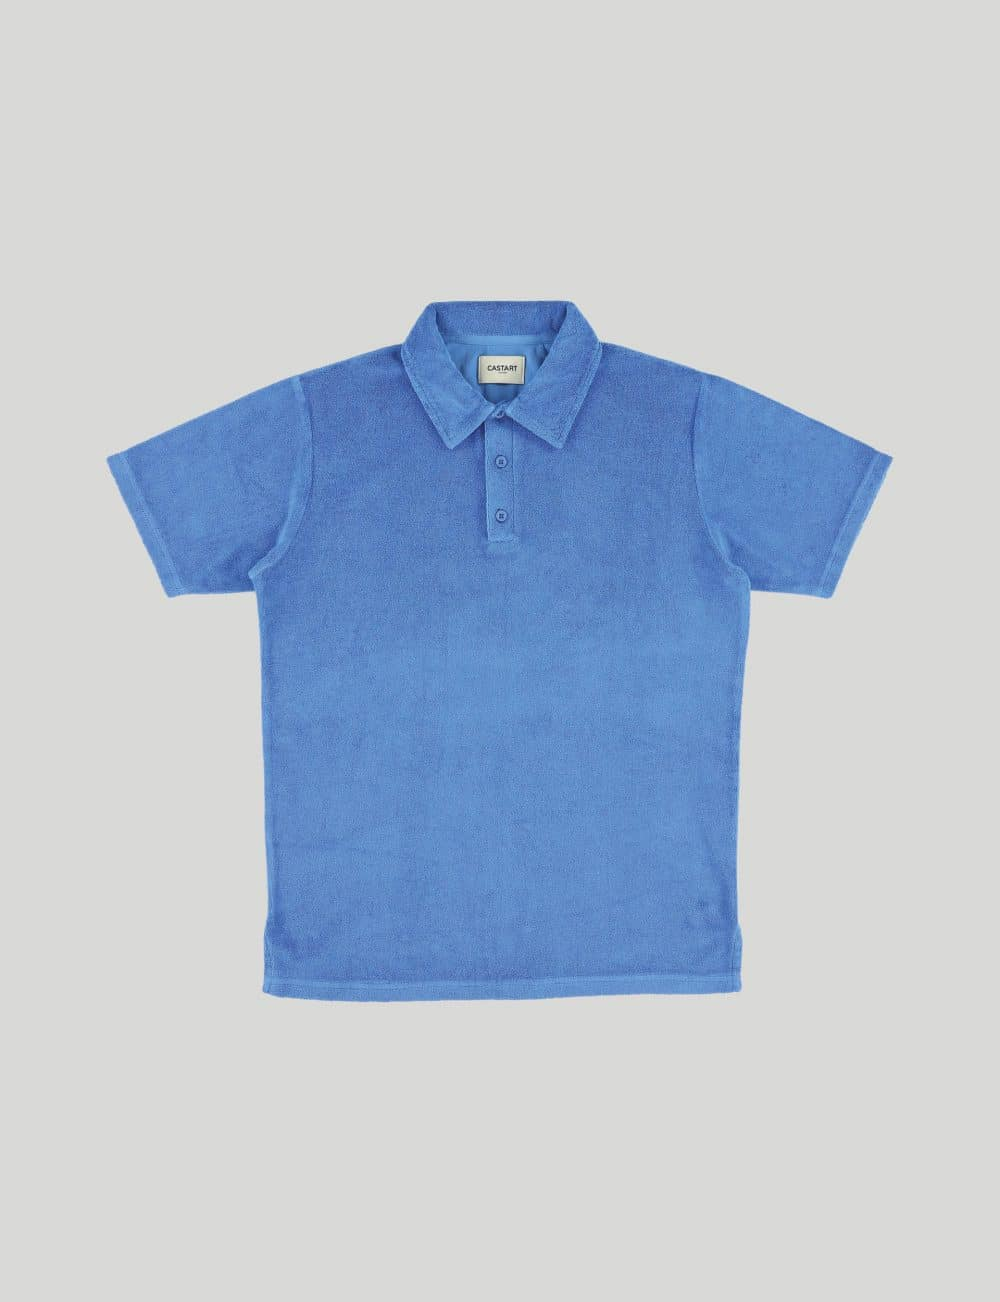 Castart - Seaford polo tee - French Blue